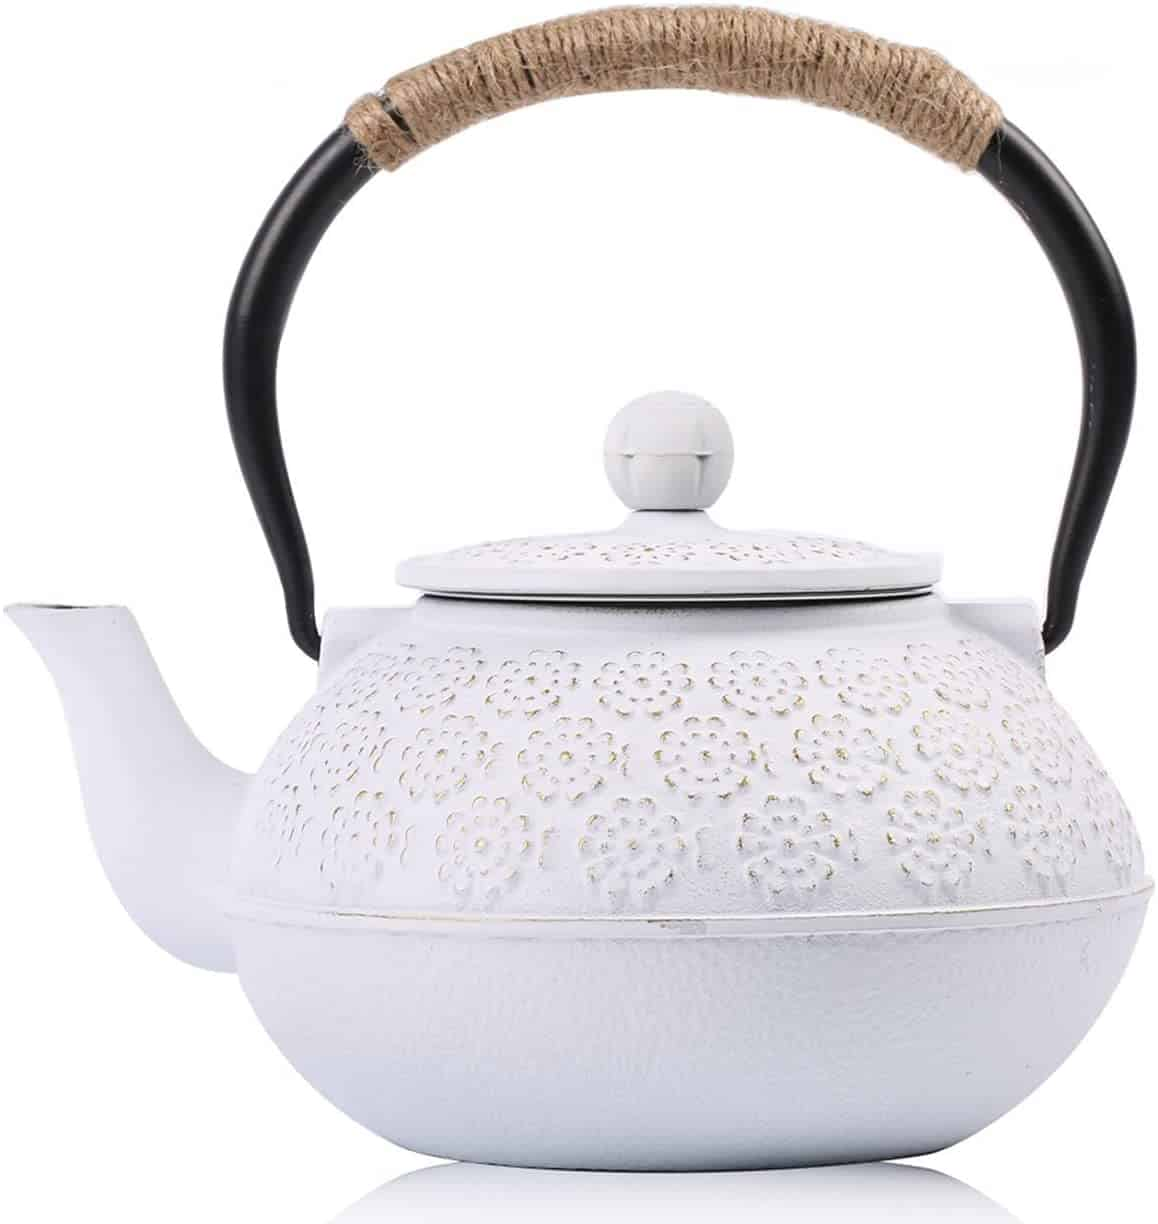 Cast Iron Teapot Sotya Tetsubin Japanese Tea Kettle